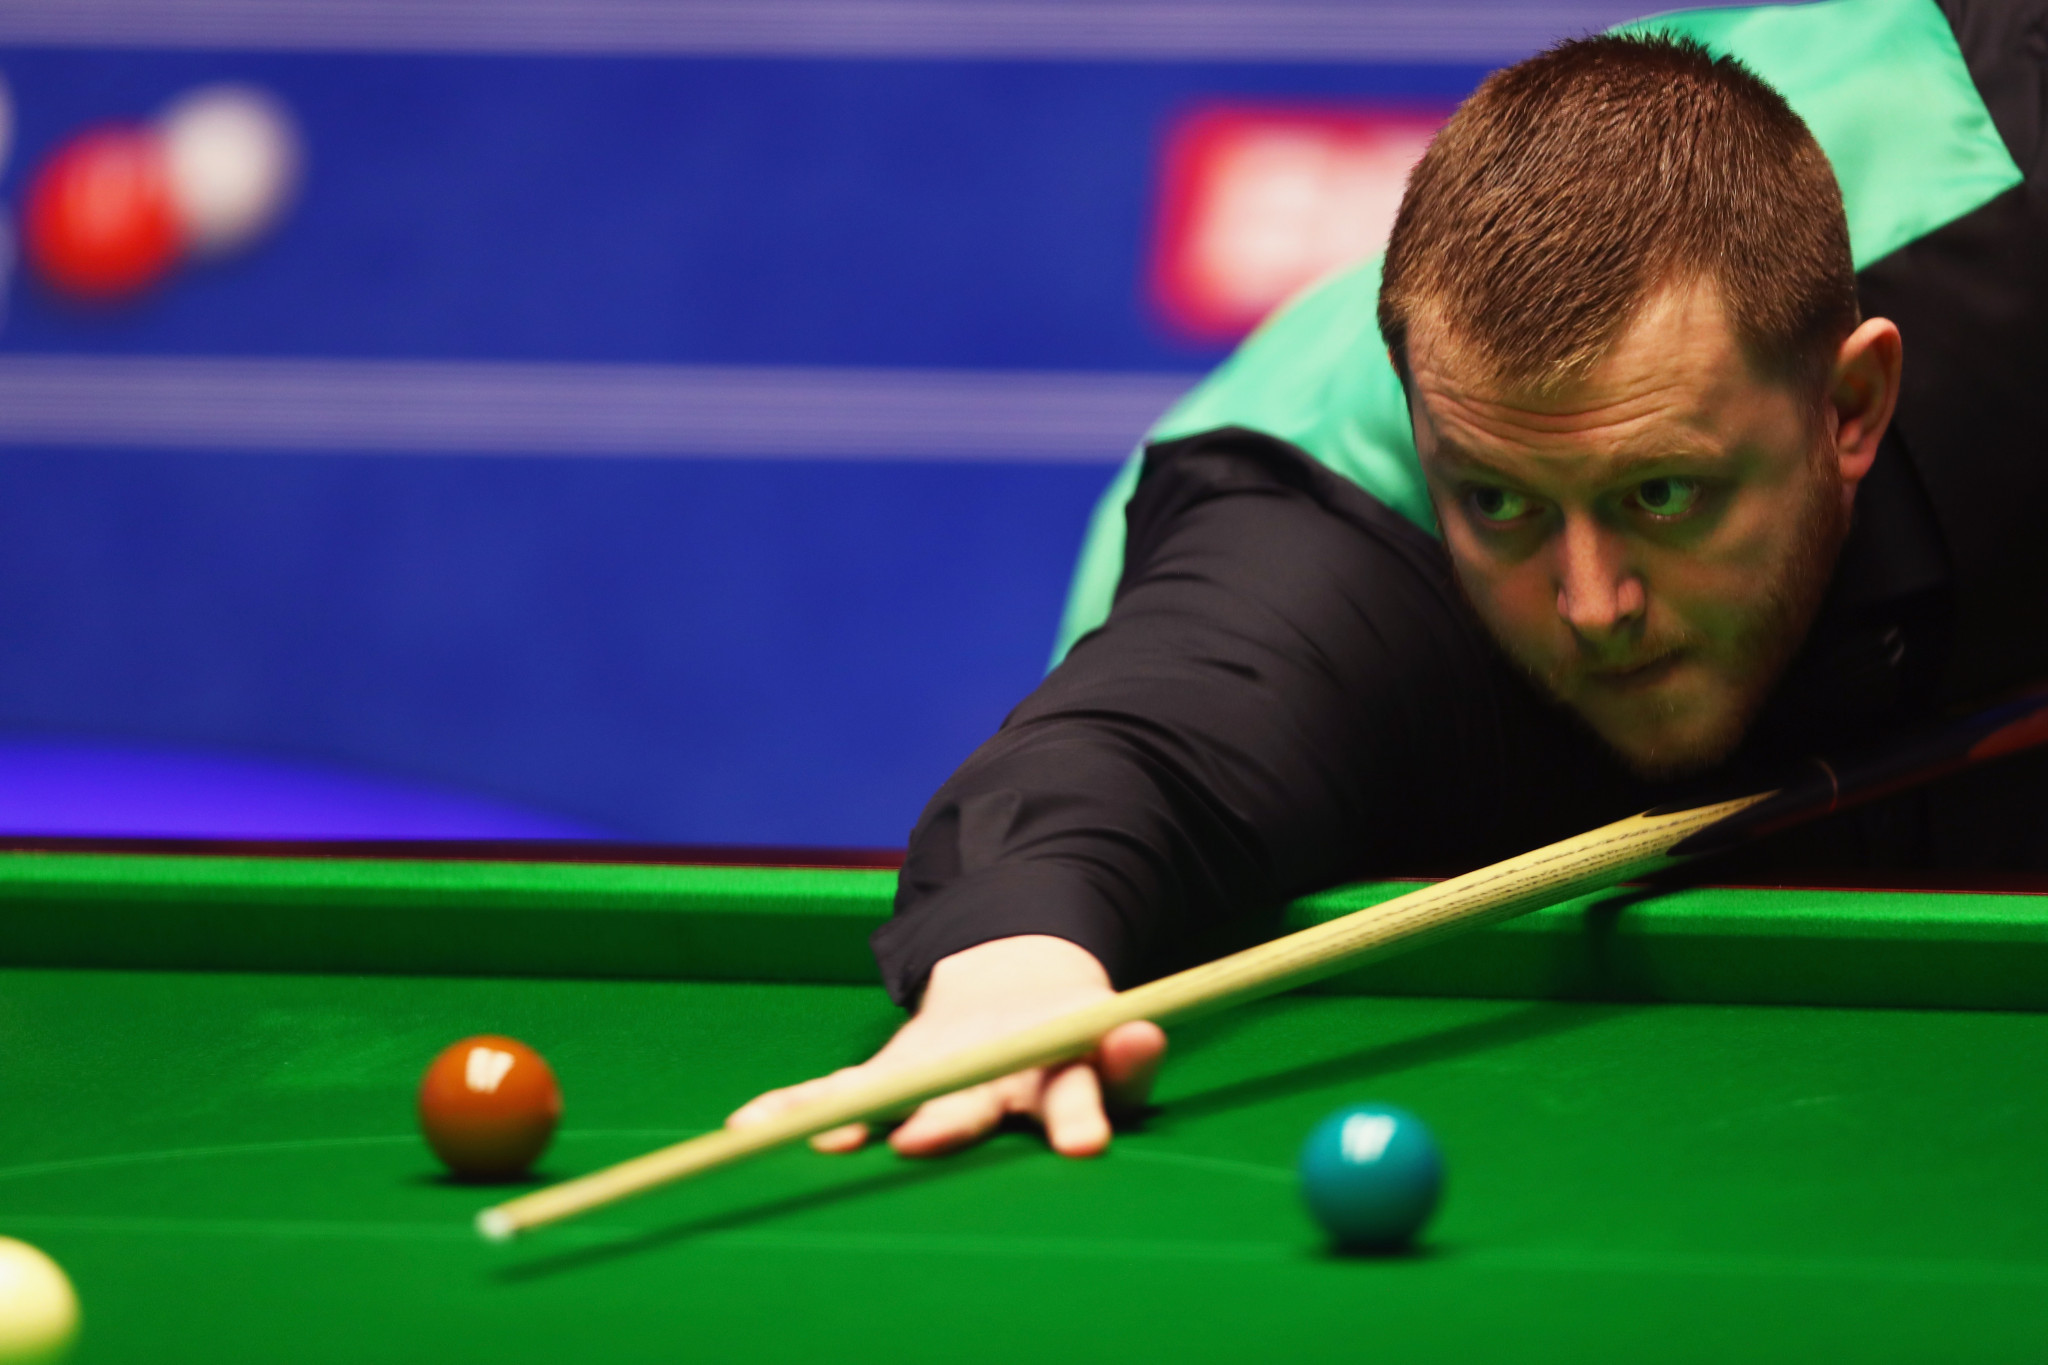 Allen and Murphy lose as seeds crash out on day five of World Snooker Championship